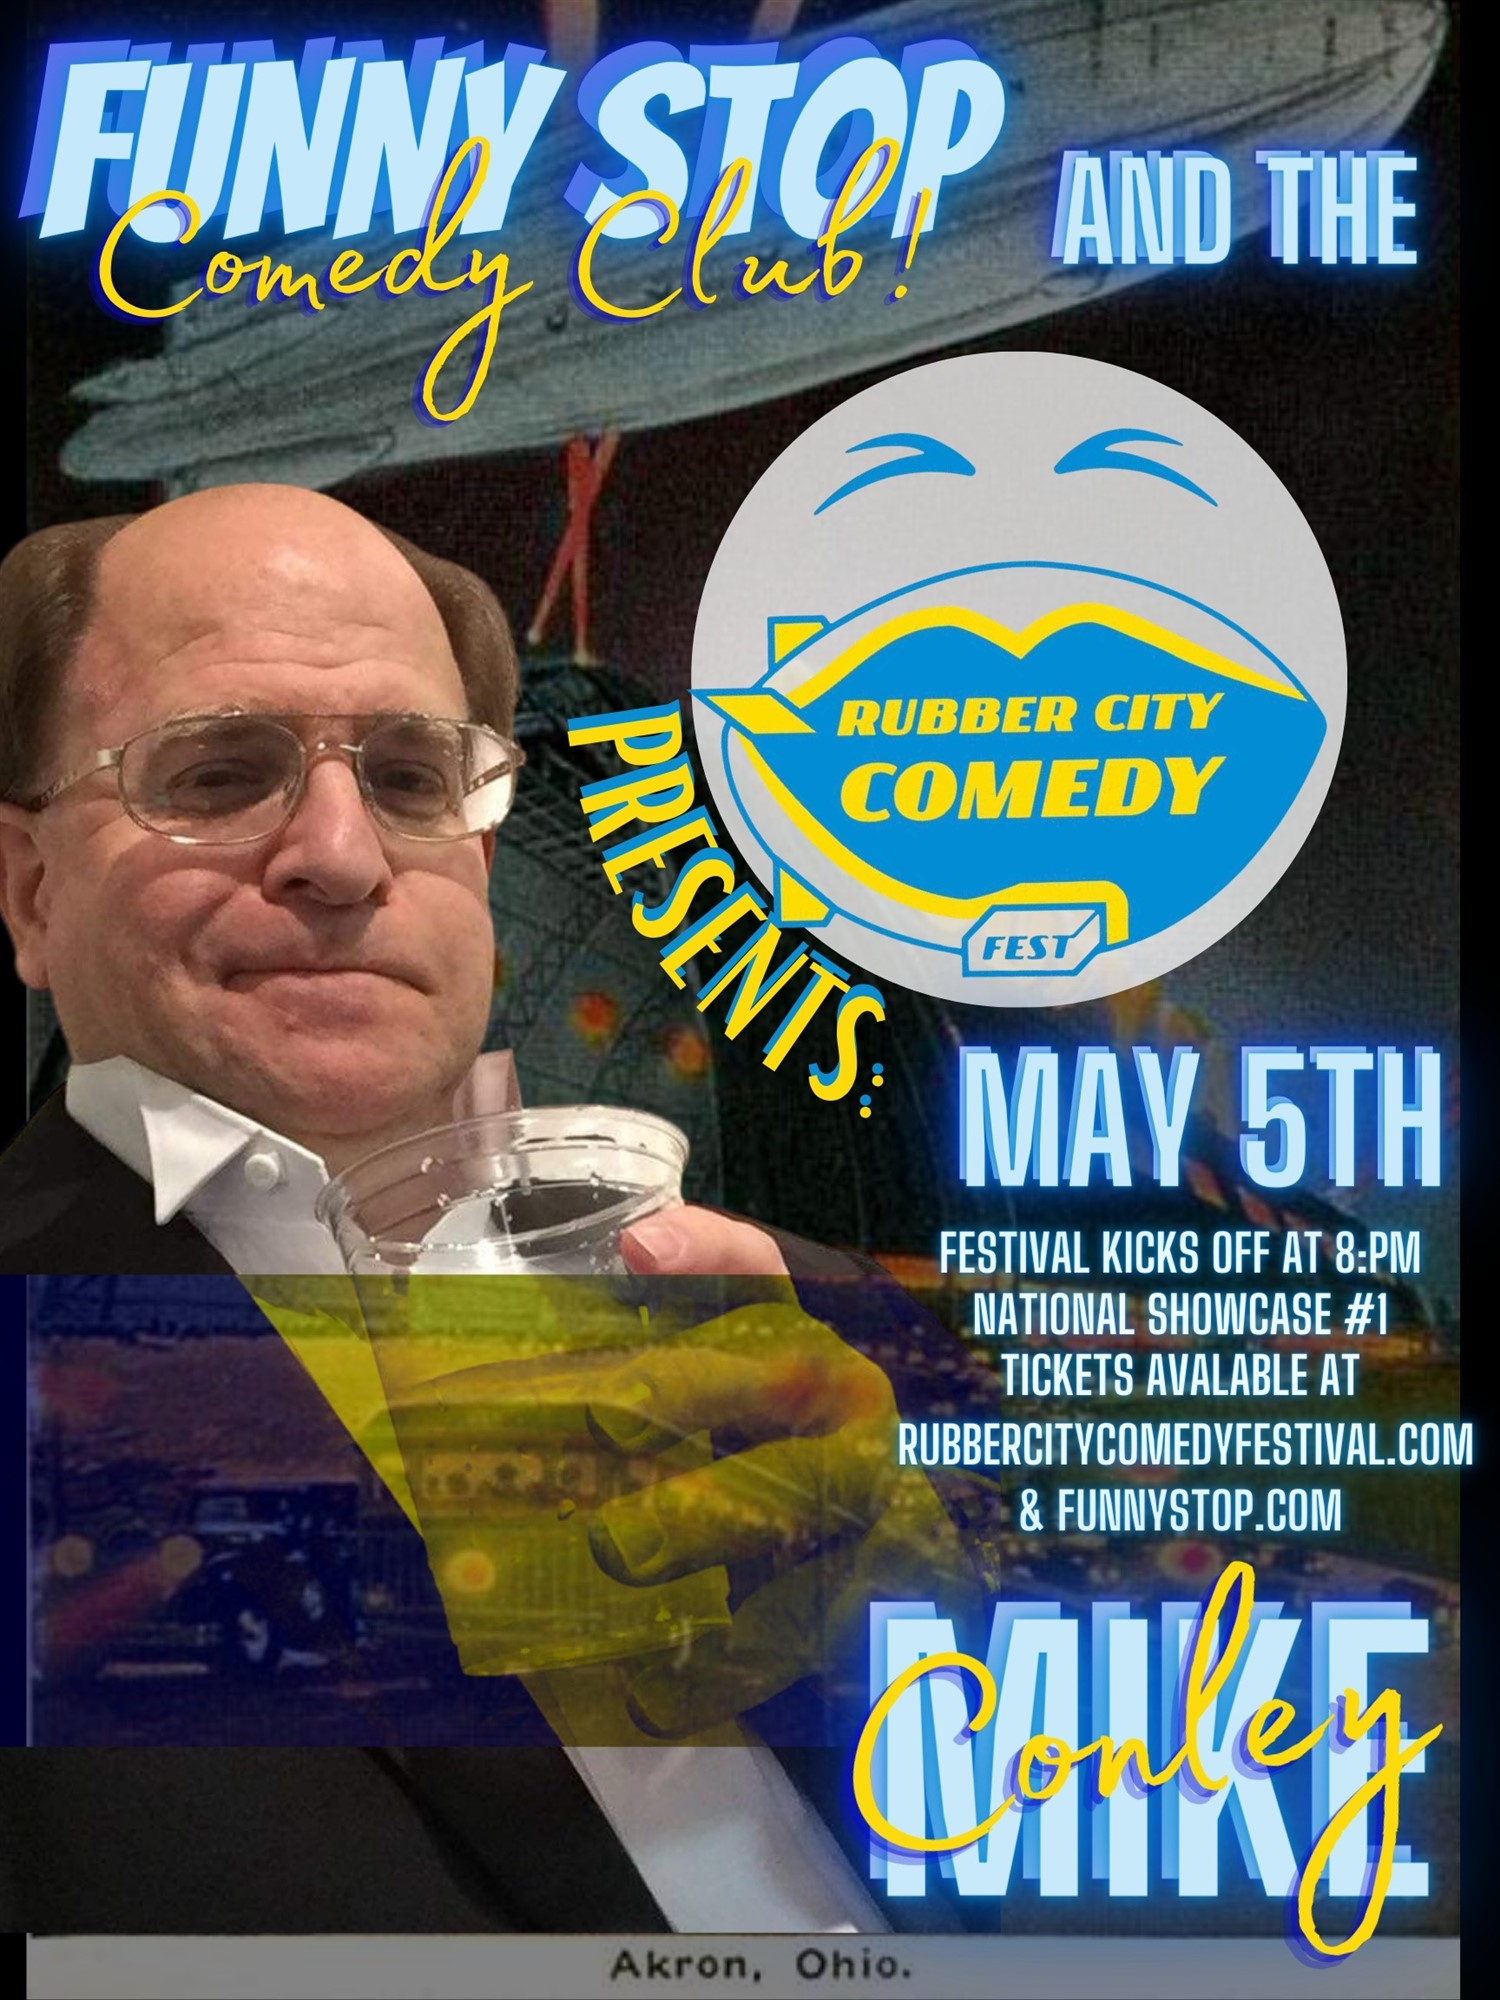 Mike Conley 8 Pm Rubber City Comedy Festival on May 05, 20:00@Funny Stop Comedy Club - Buy tickets and Get information on Funny Stop funnystop.online